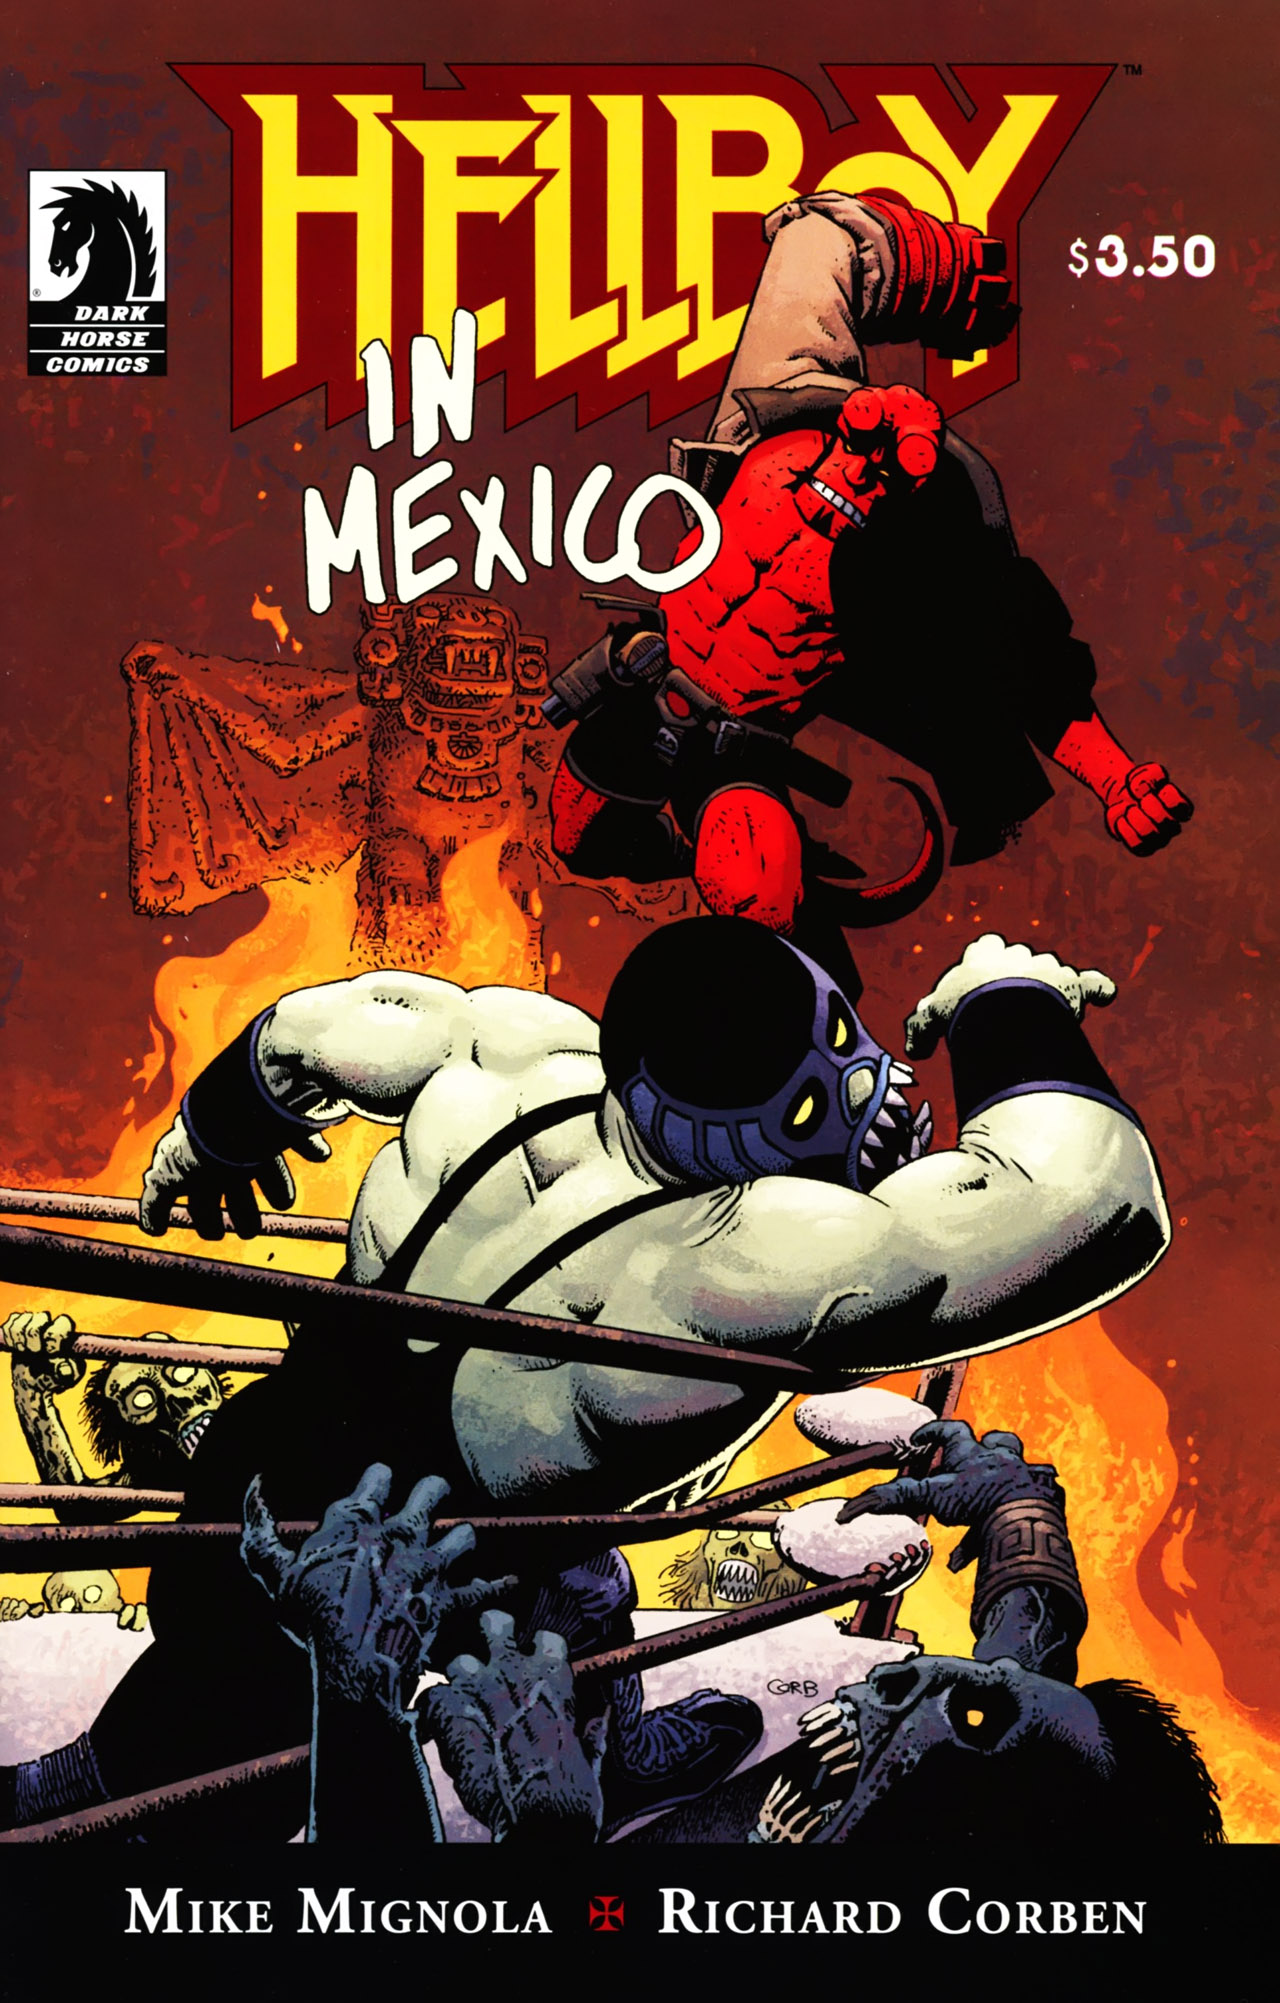 Hellboy in Mexico (story)